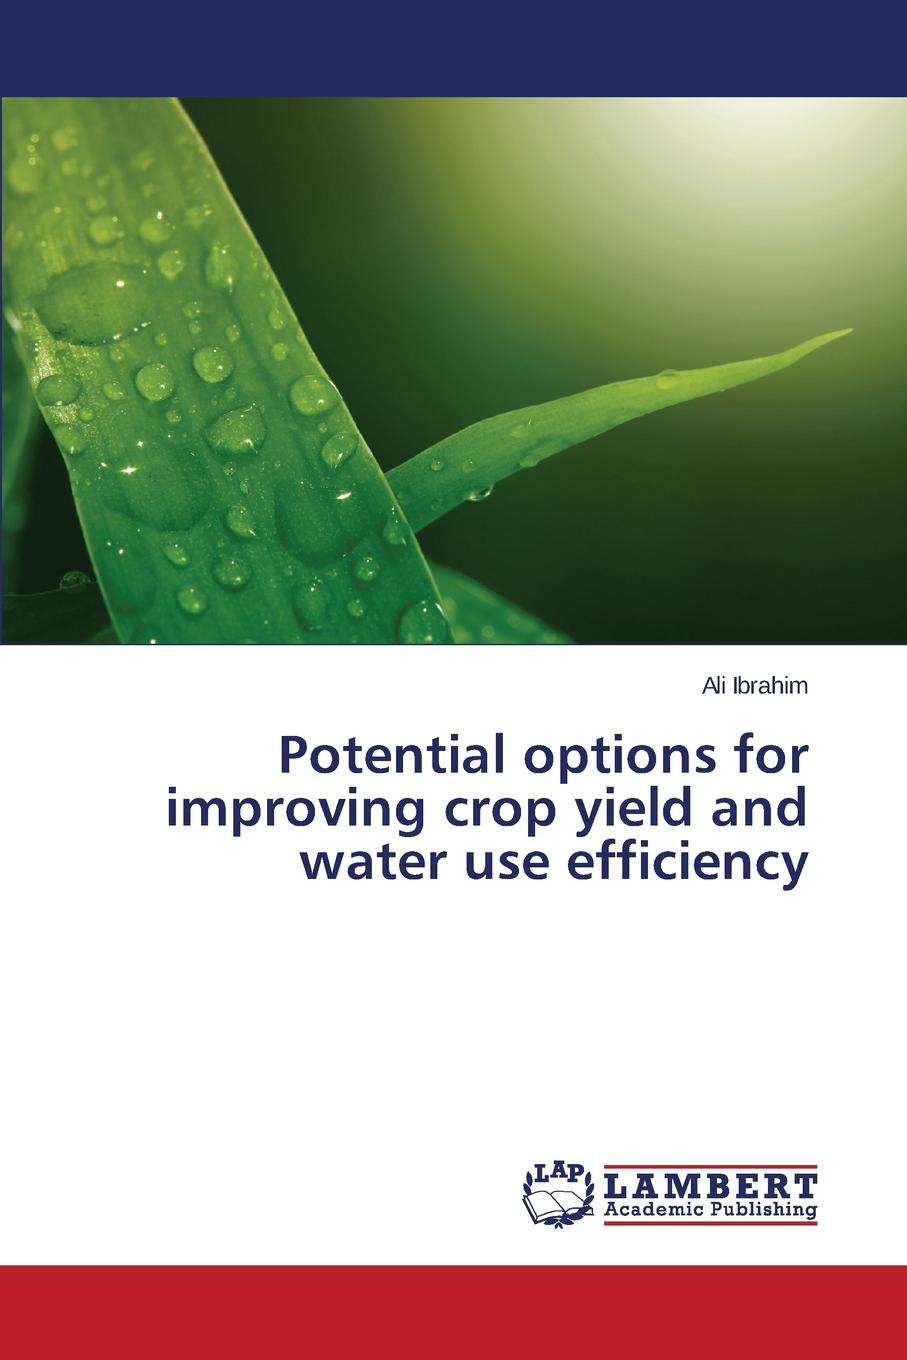 IBRAHIM Ali Potential options for improving crop yield and water use efficiency parvaiz ahmad legumes under environmental stress yield improvement and adaptations